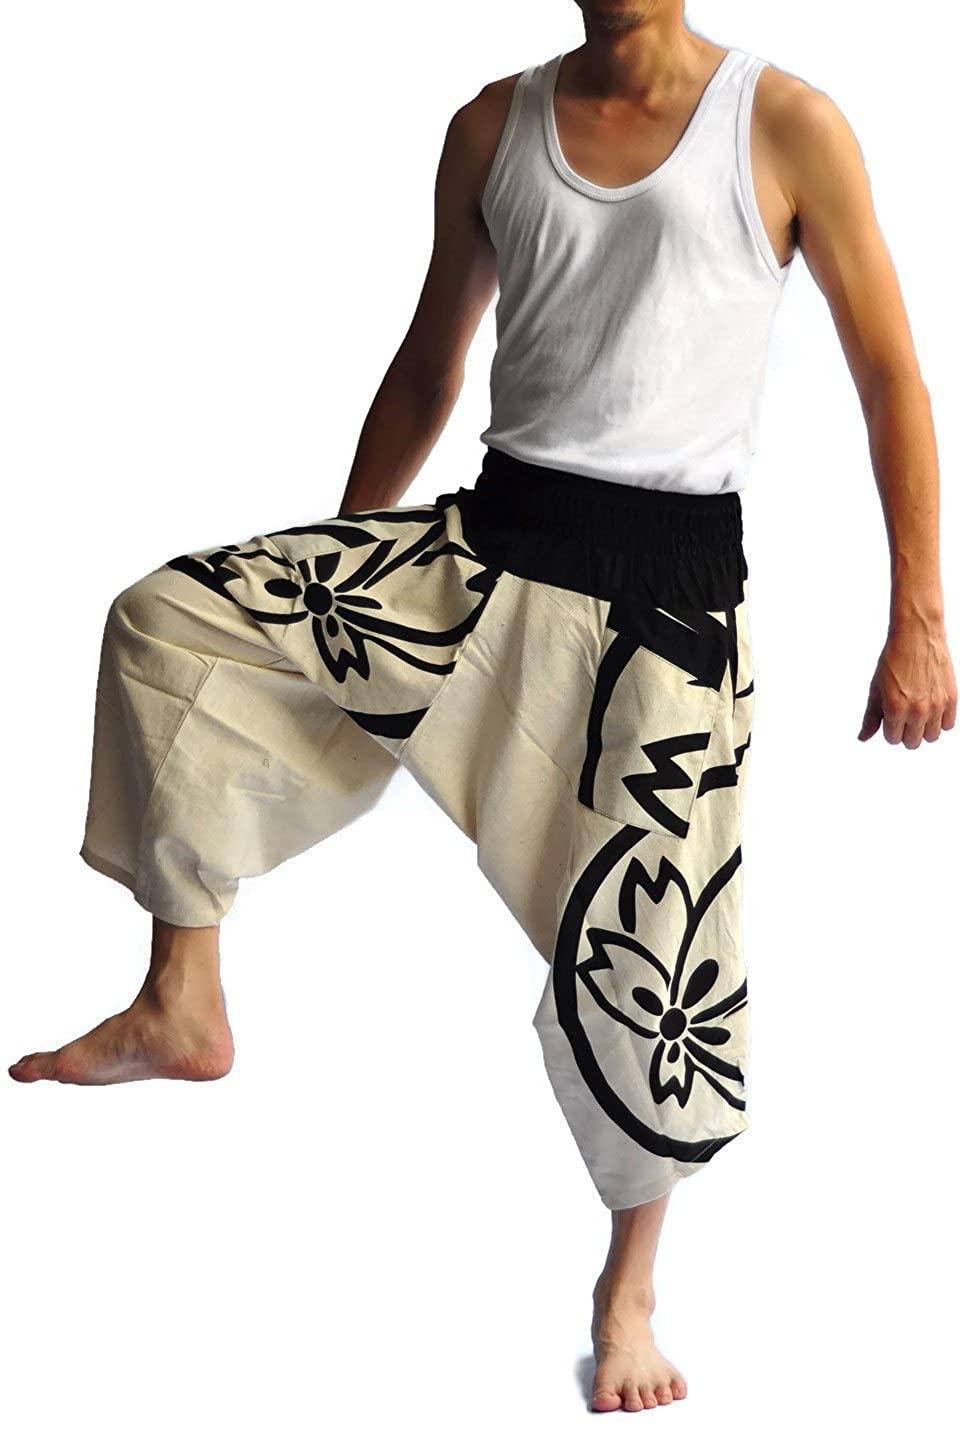 Siam Trendy Men's Japanese Style Pants One Size White with Leaf Design PJ004BFD